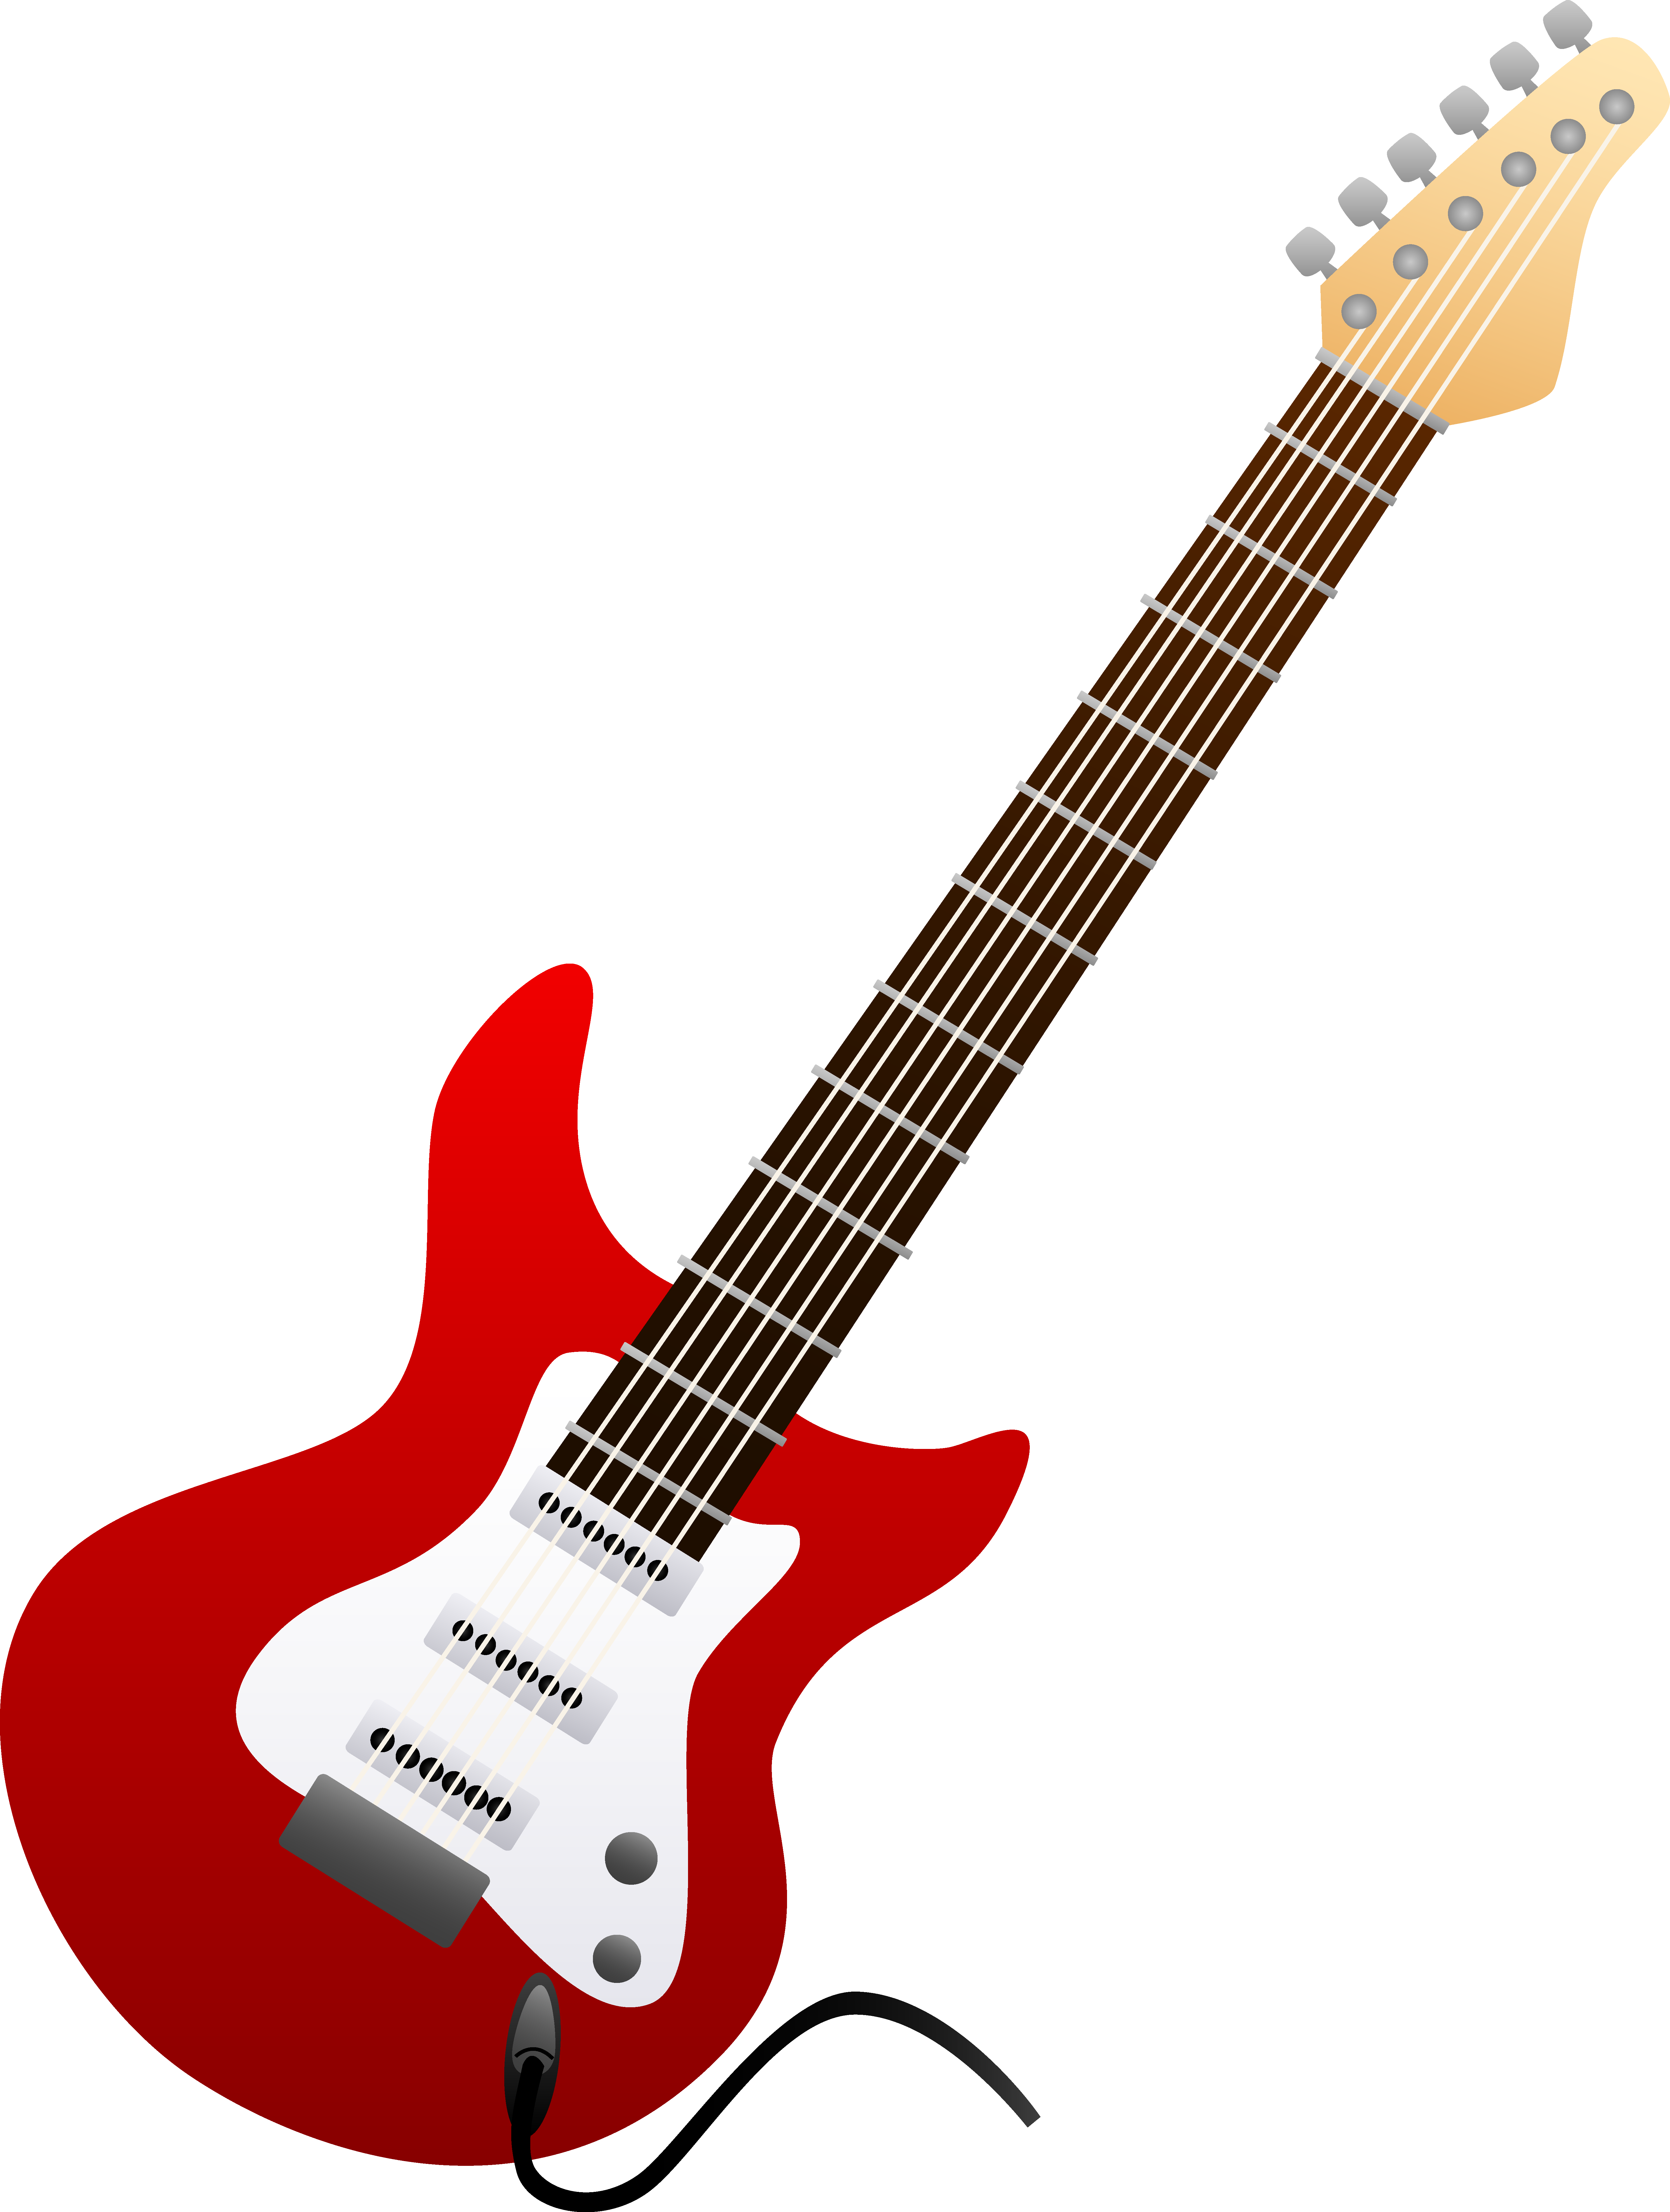 guitar clip art. Lightning clipart rock and roll